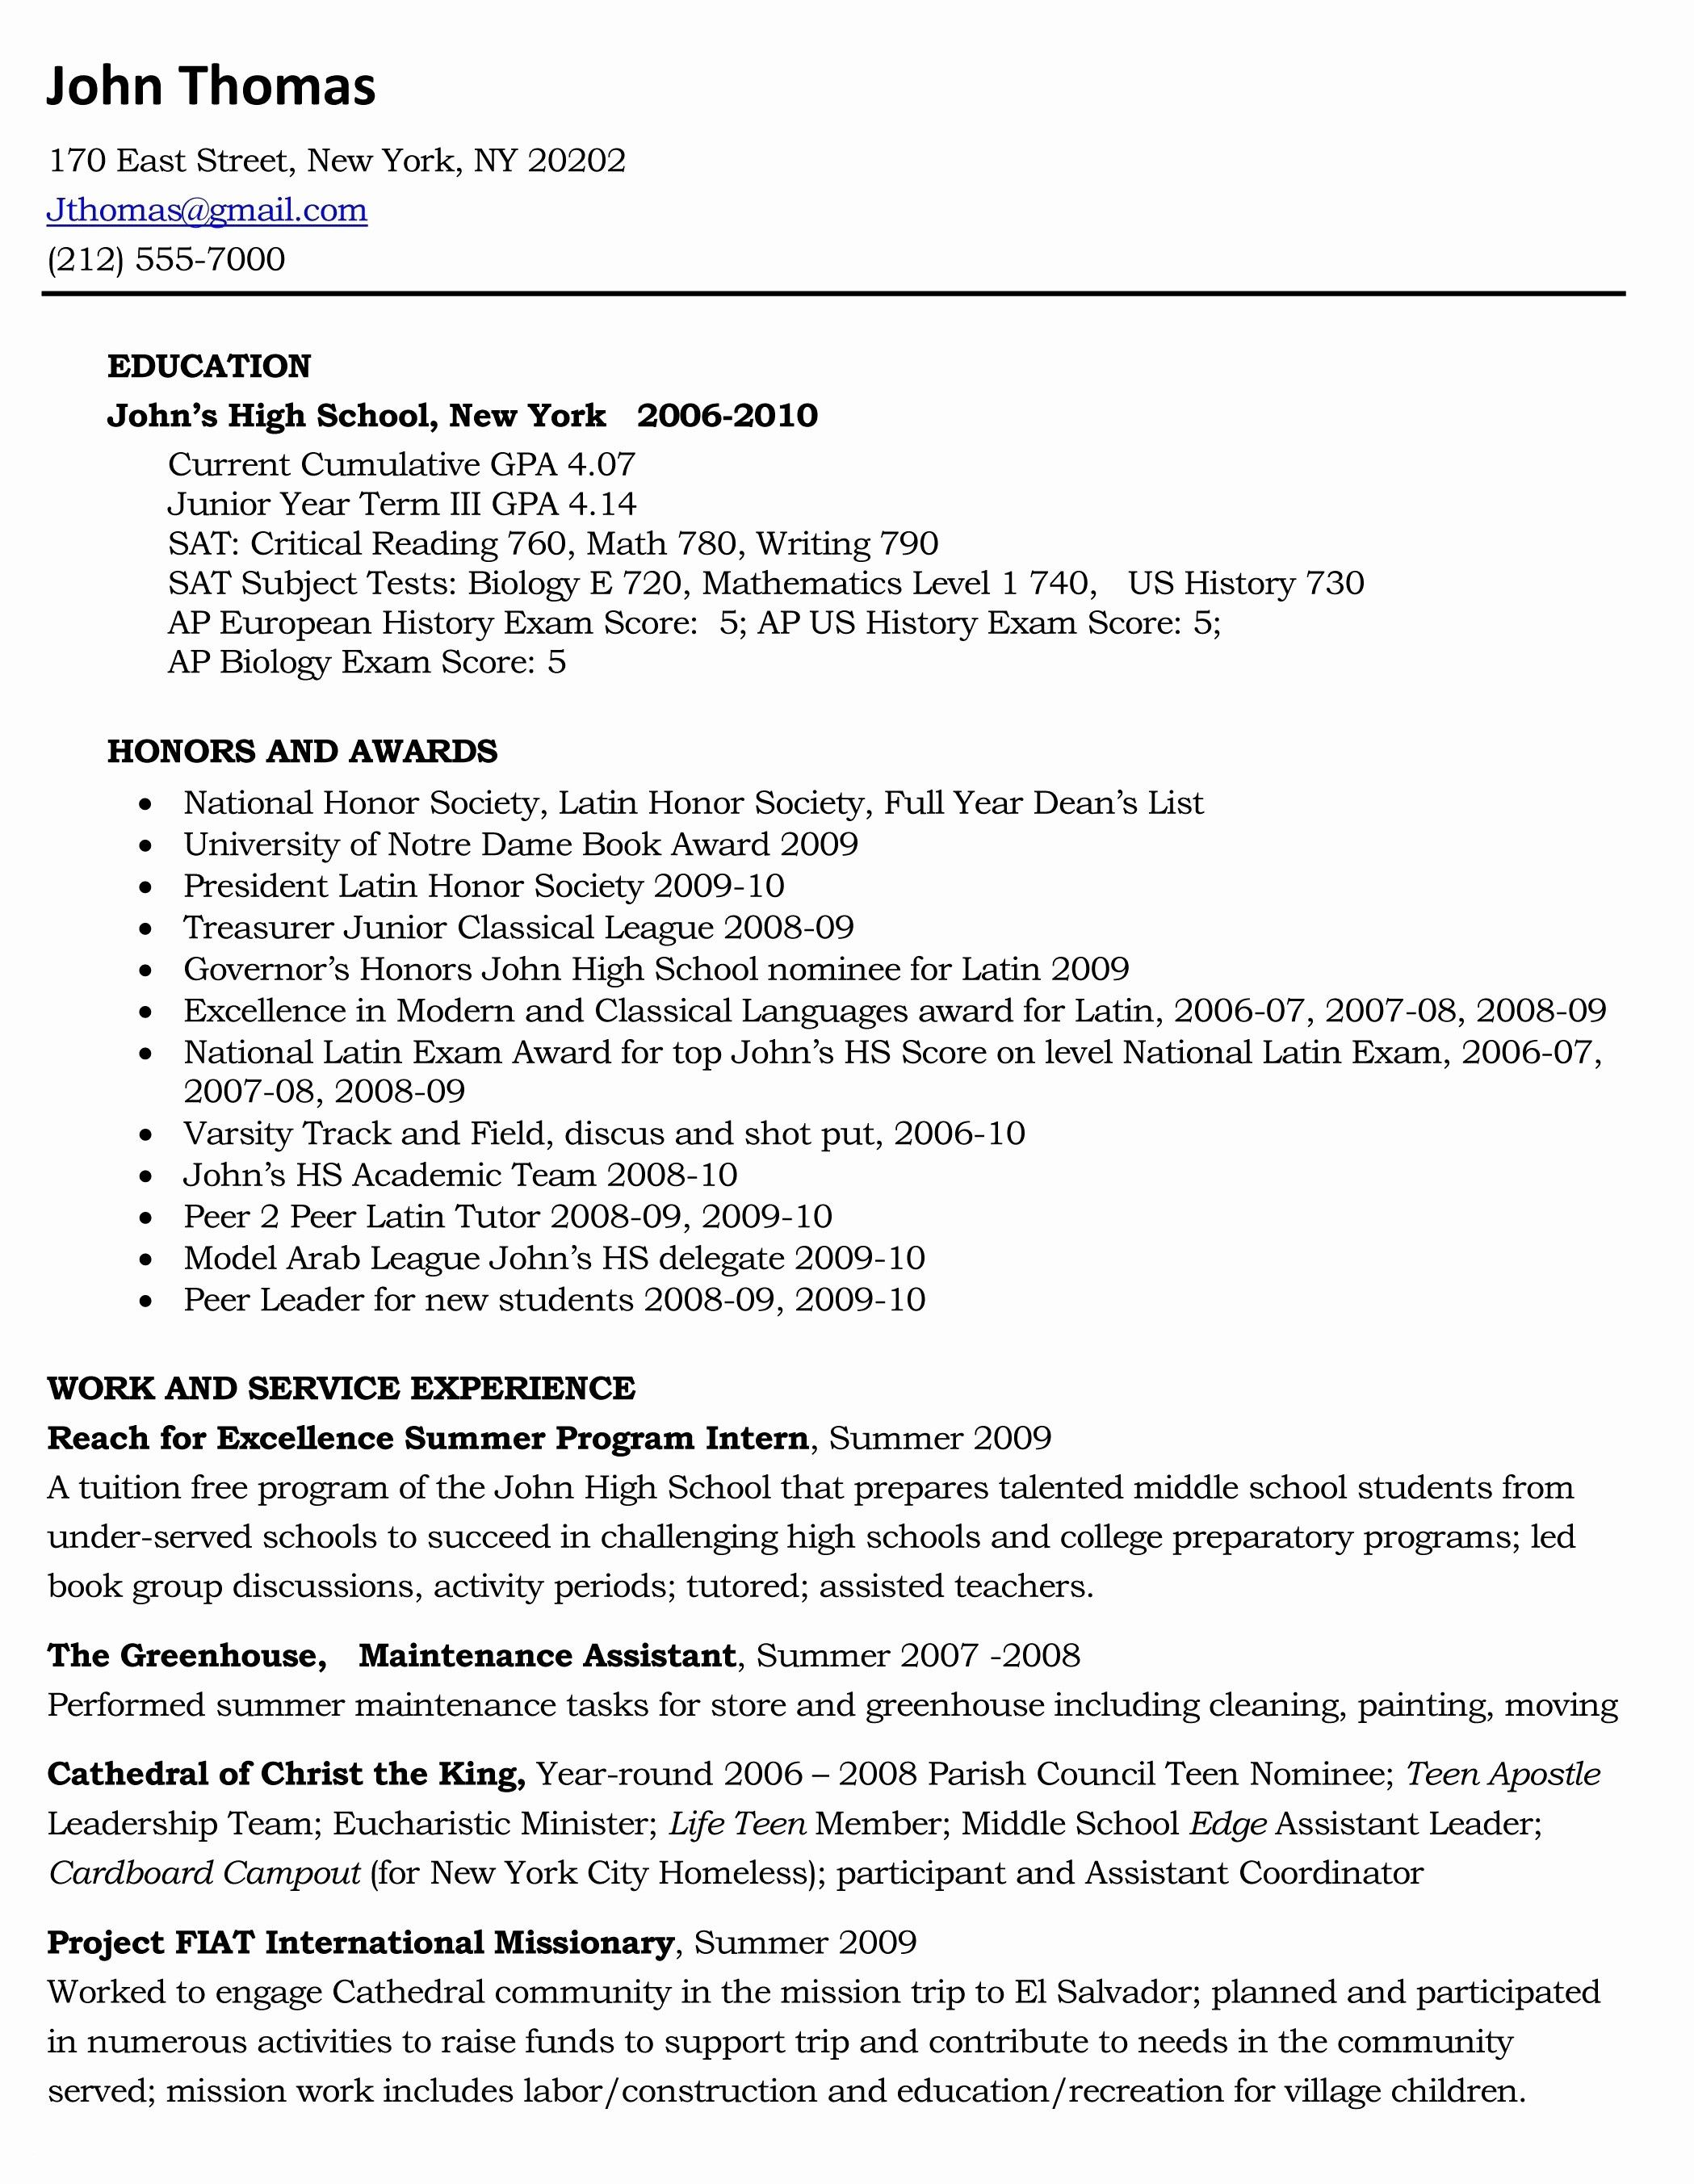 sample resume xls format  resume format  high school resume  sample resume xls format  format resume resumeformat sample